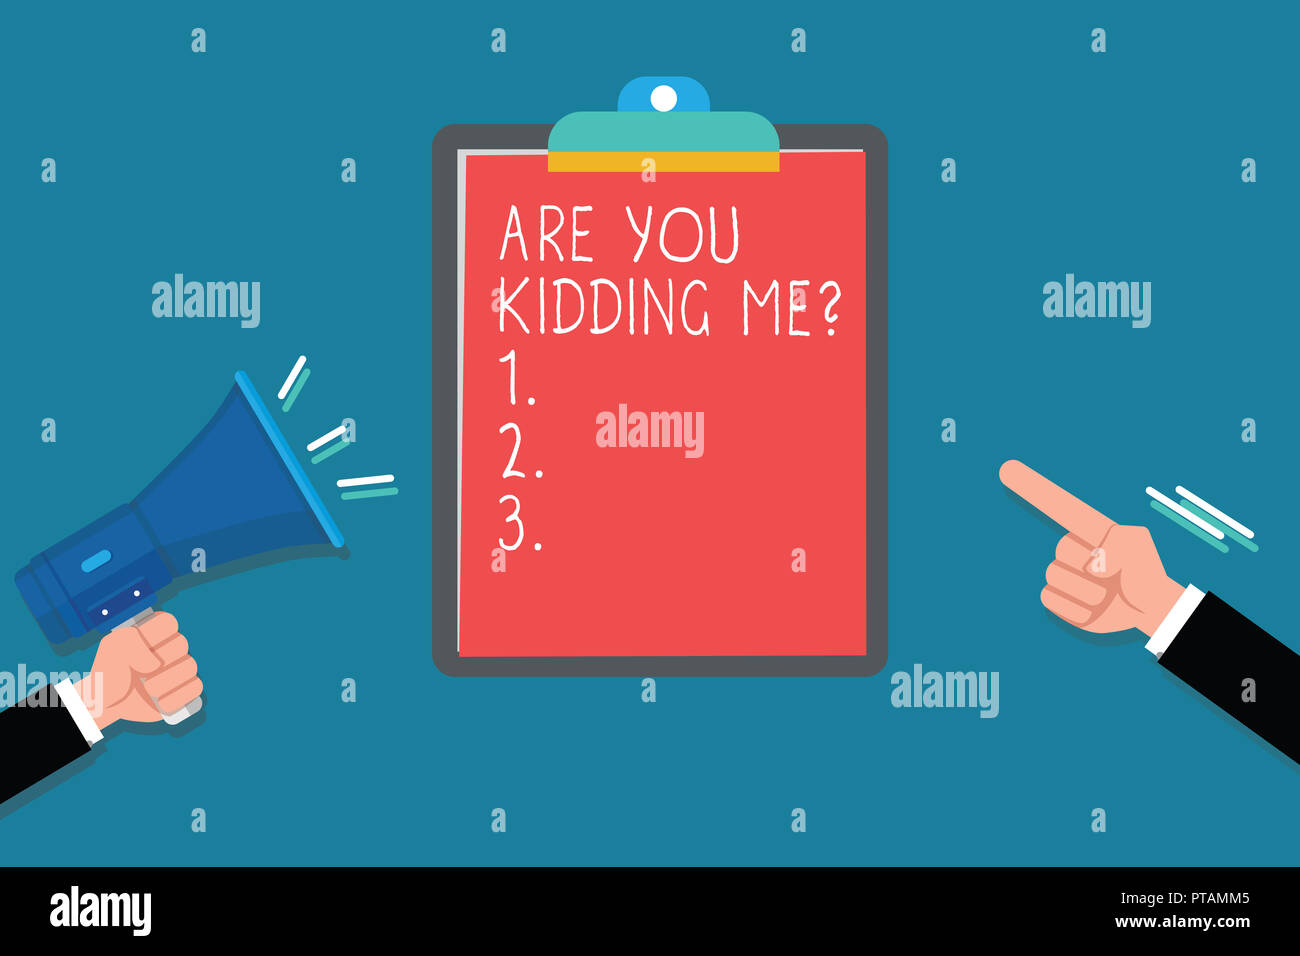 recipe: kidding me meaning [18]